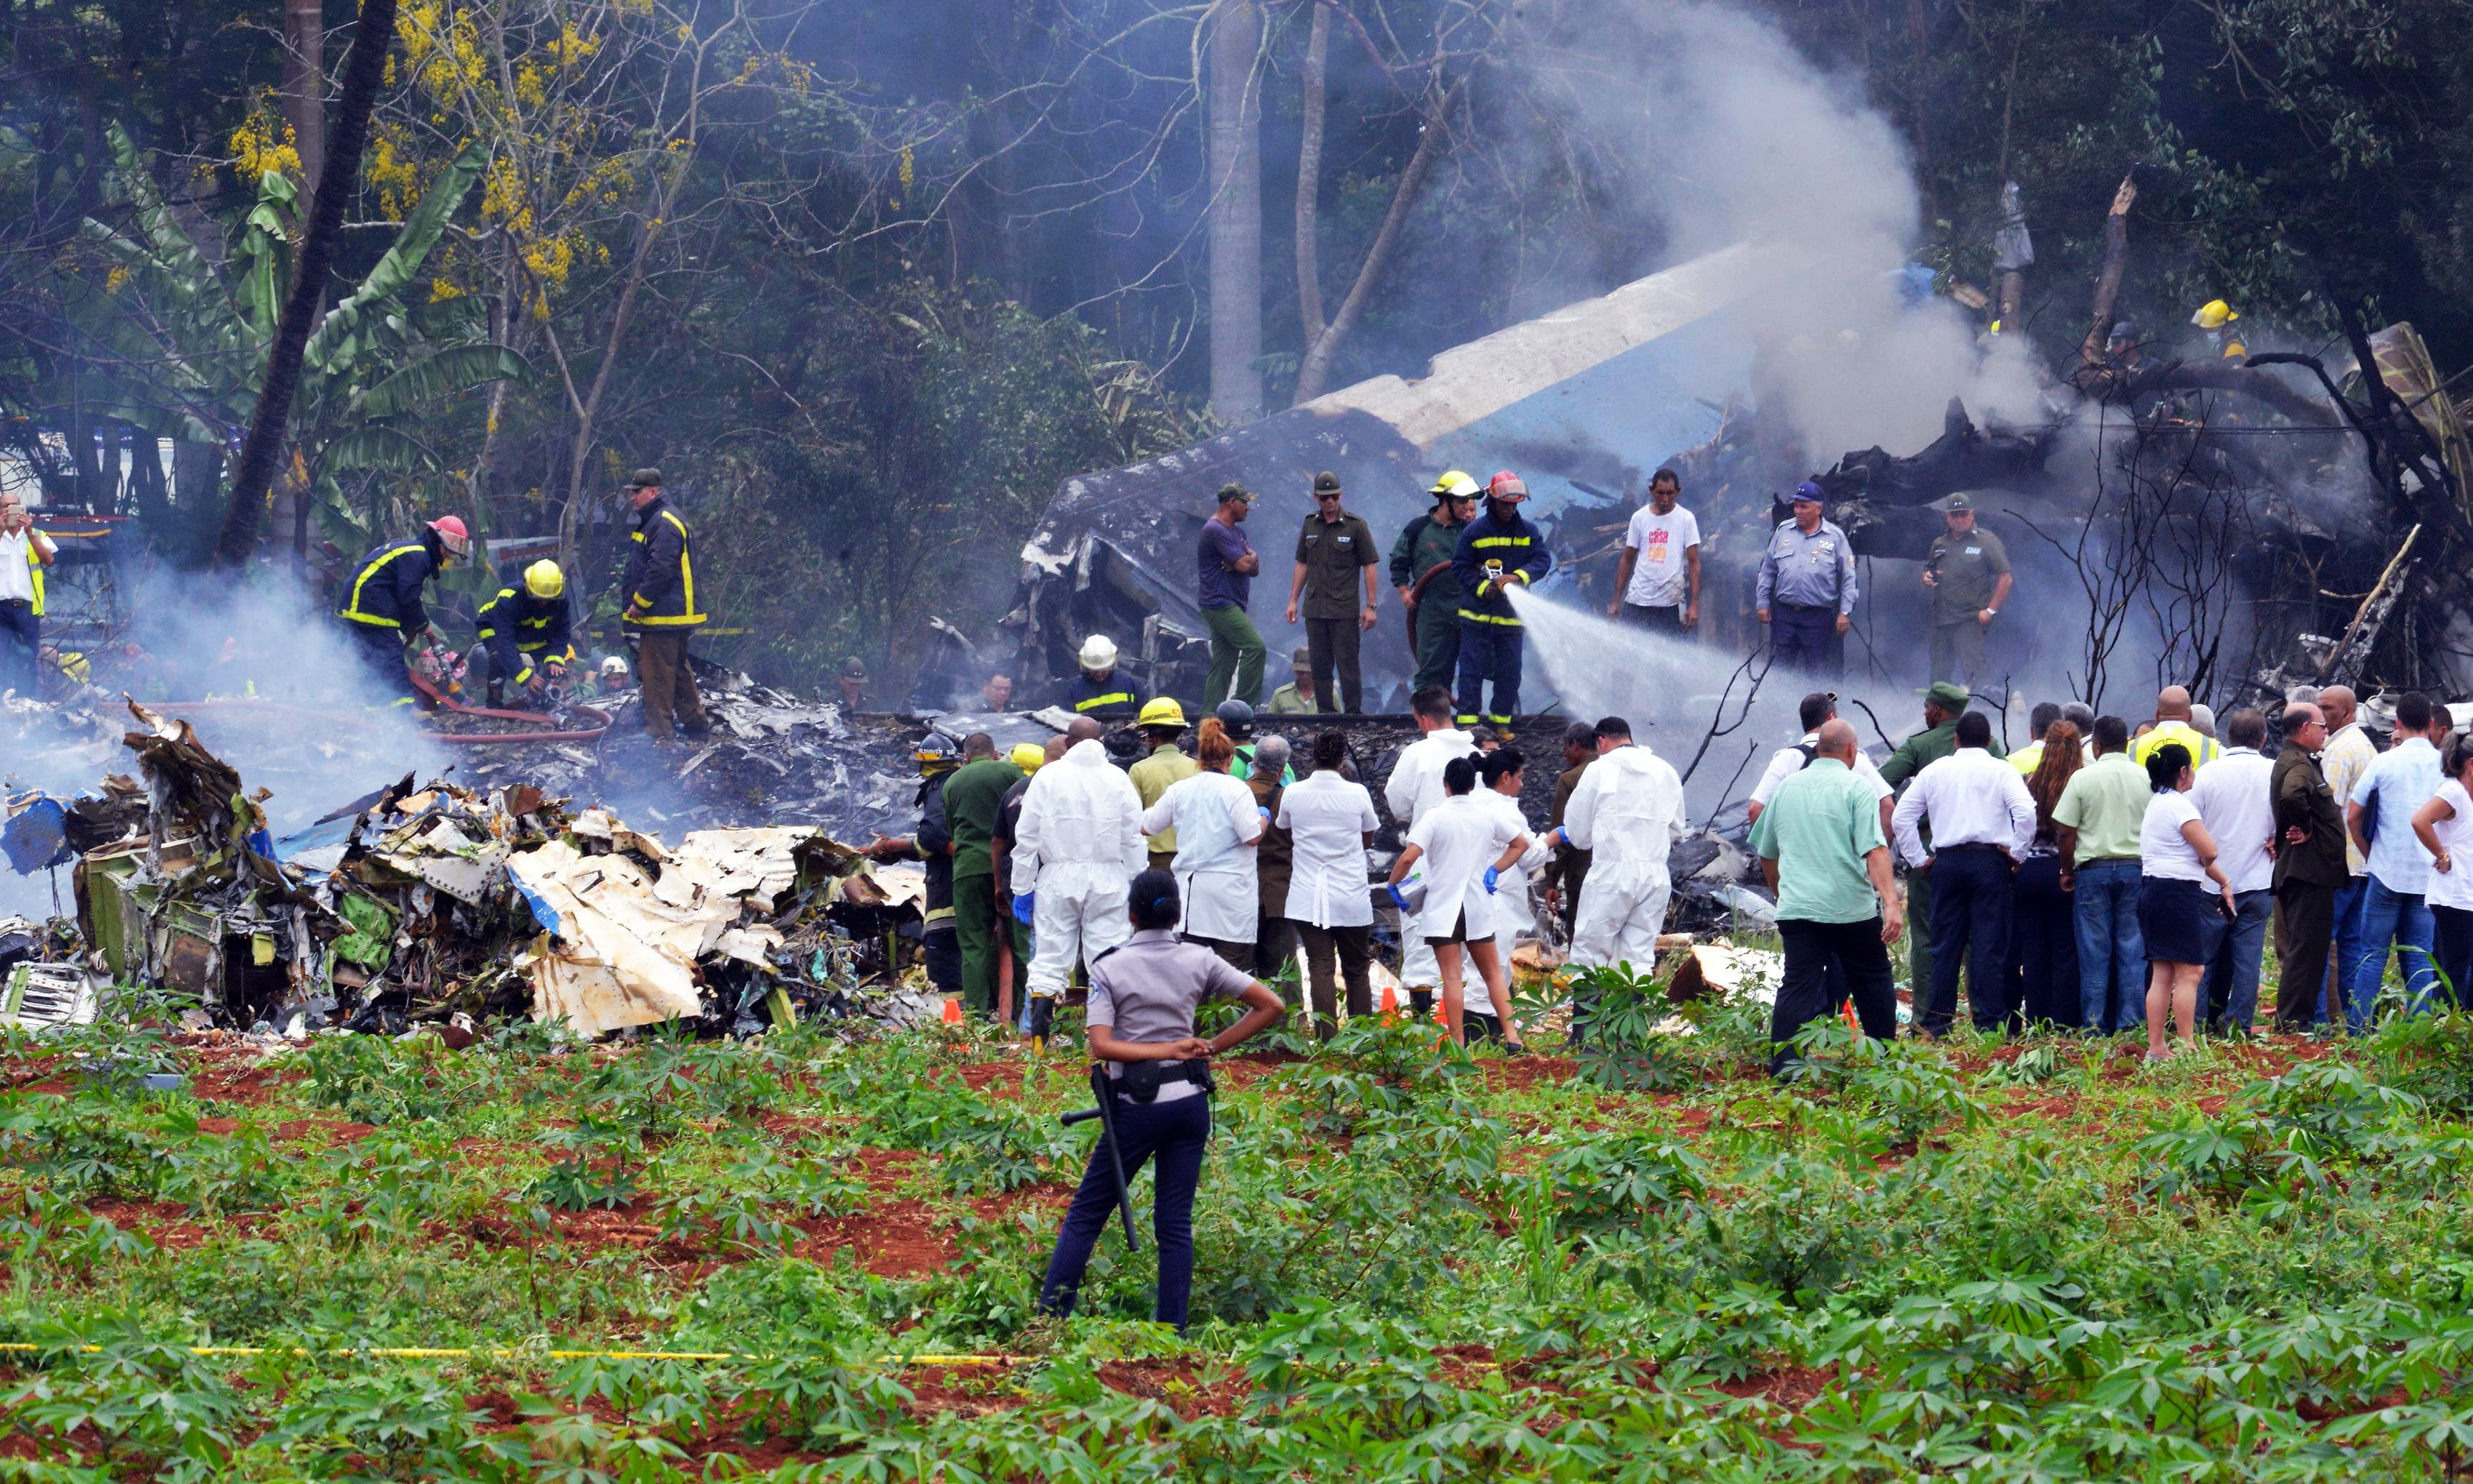 Cuban airliner with 113 on board crashes after takeoff from Havana